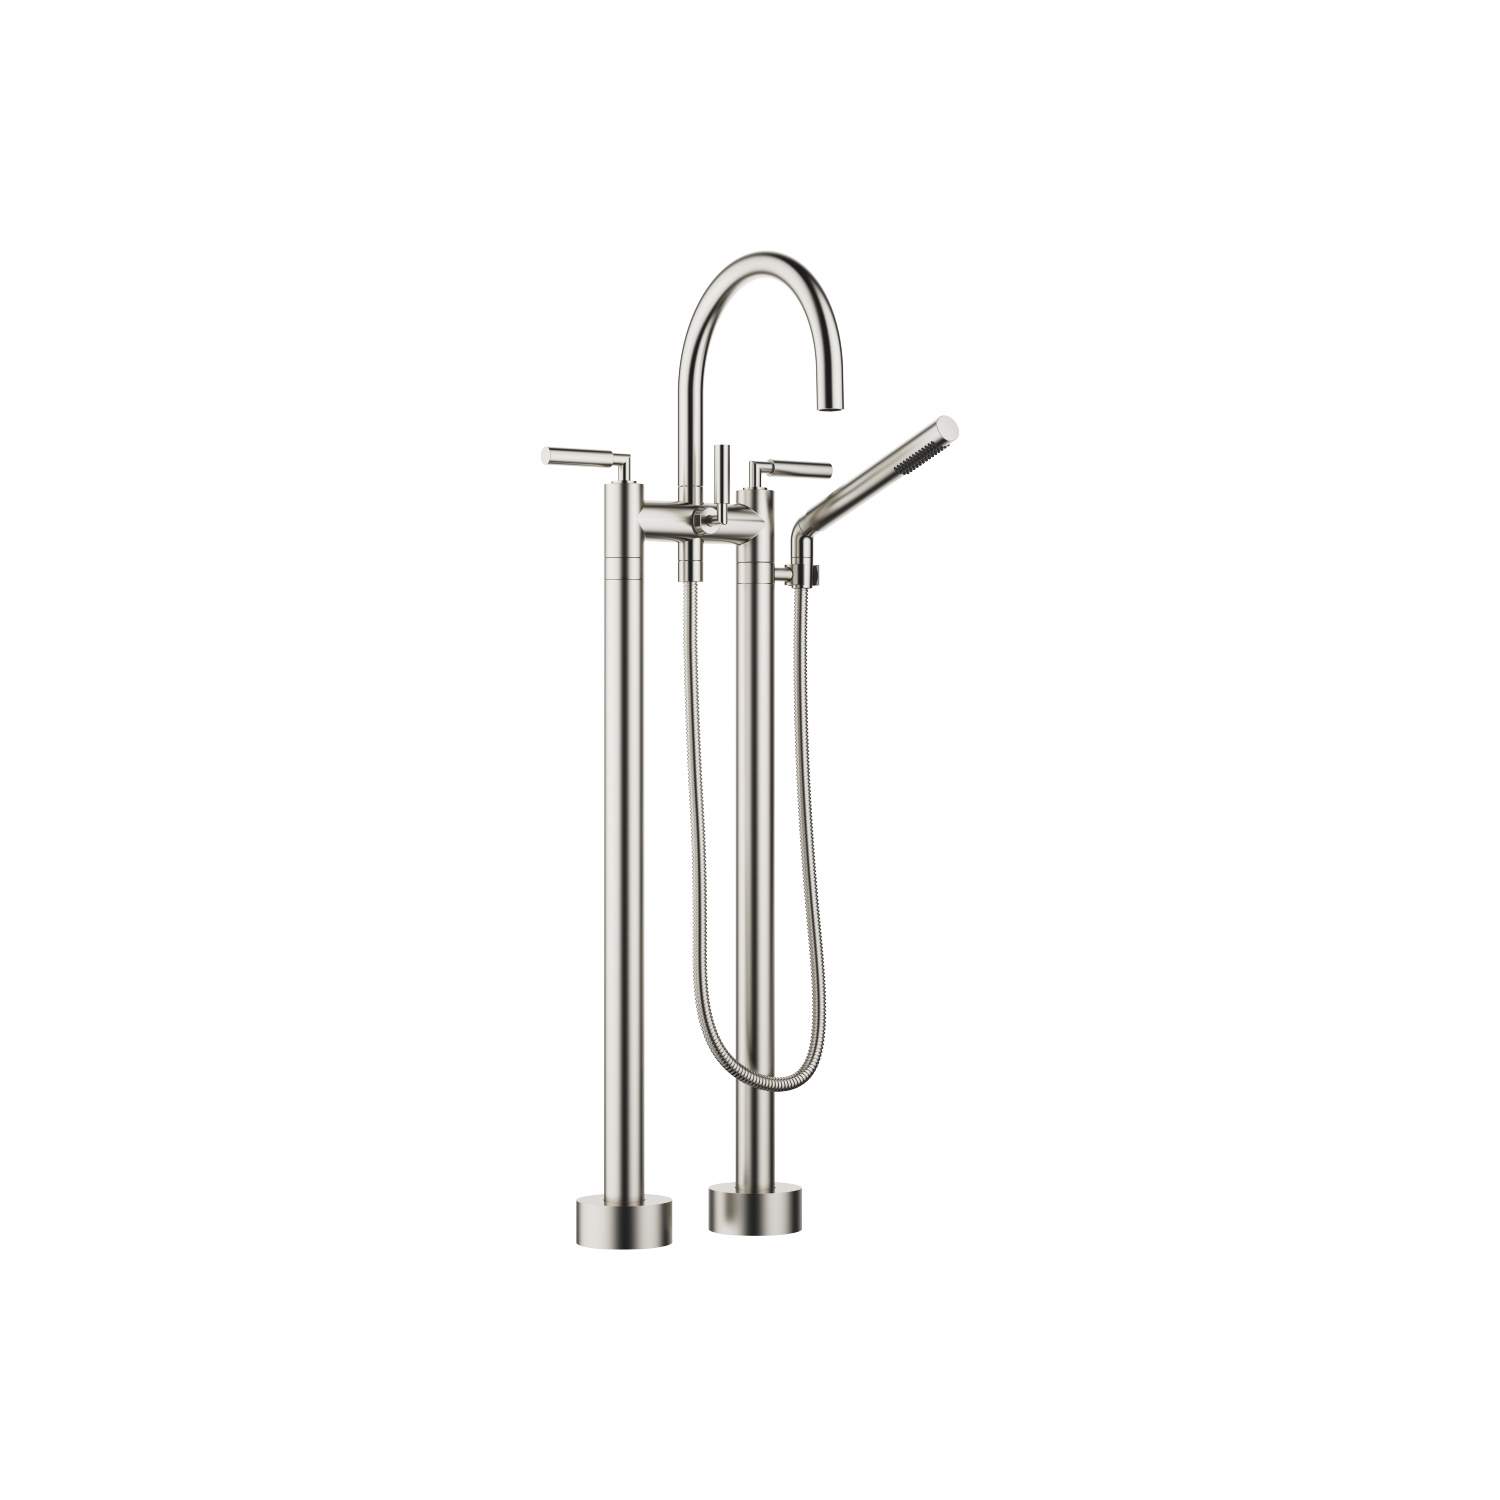 Two-hole bath mixer for free-standing assembly with hand shower set - platinum matt